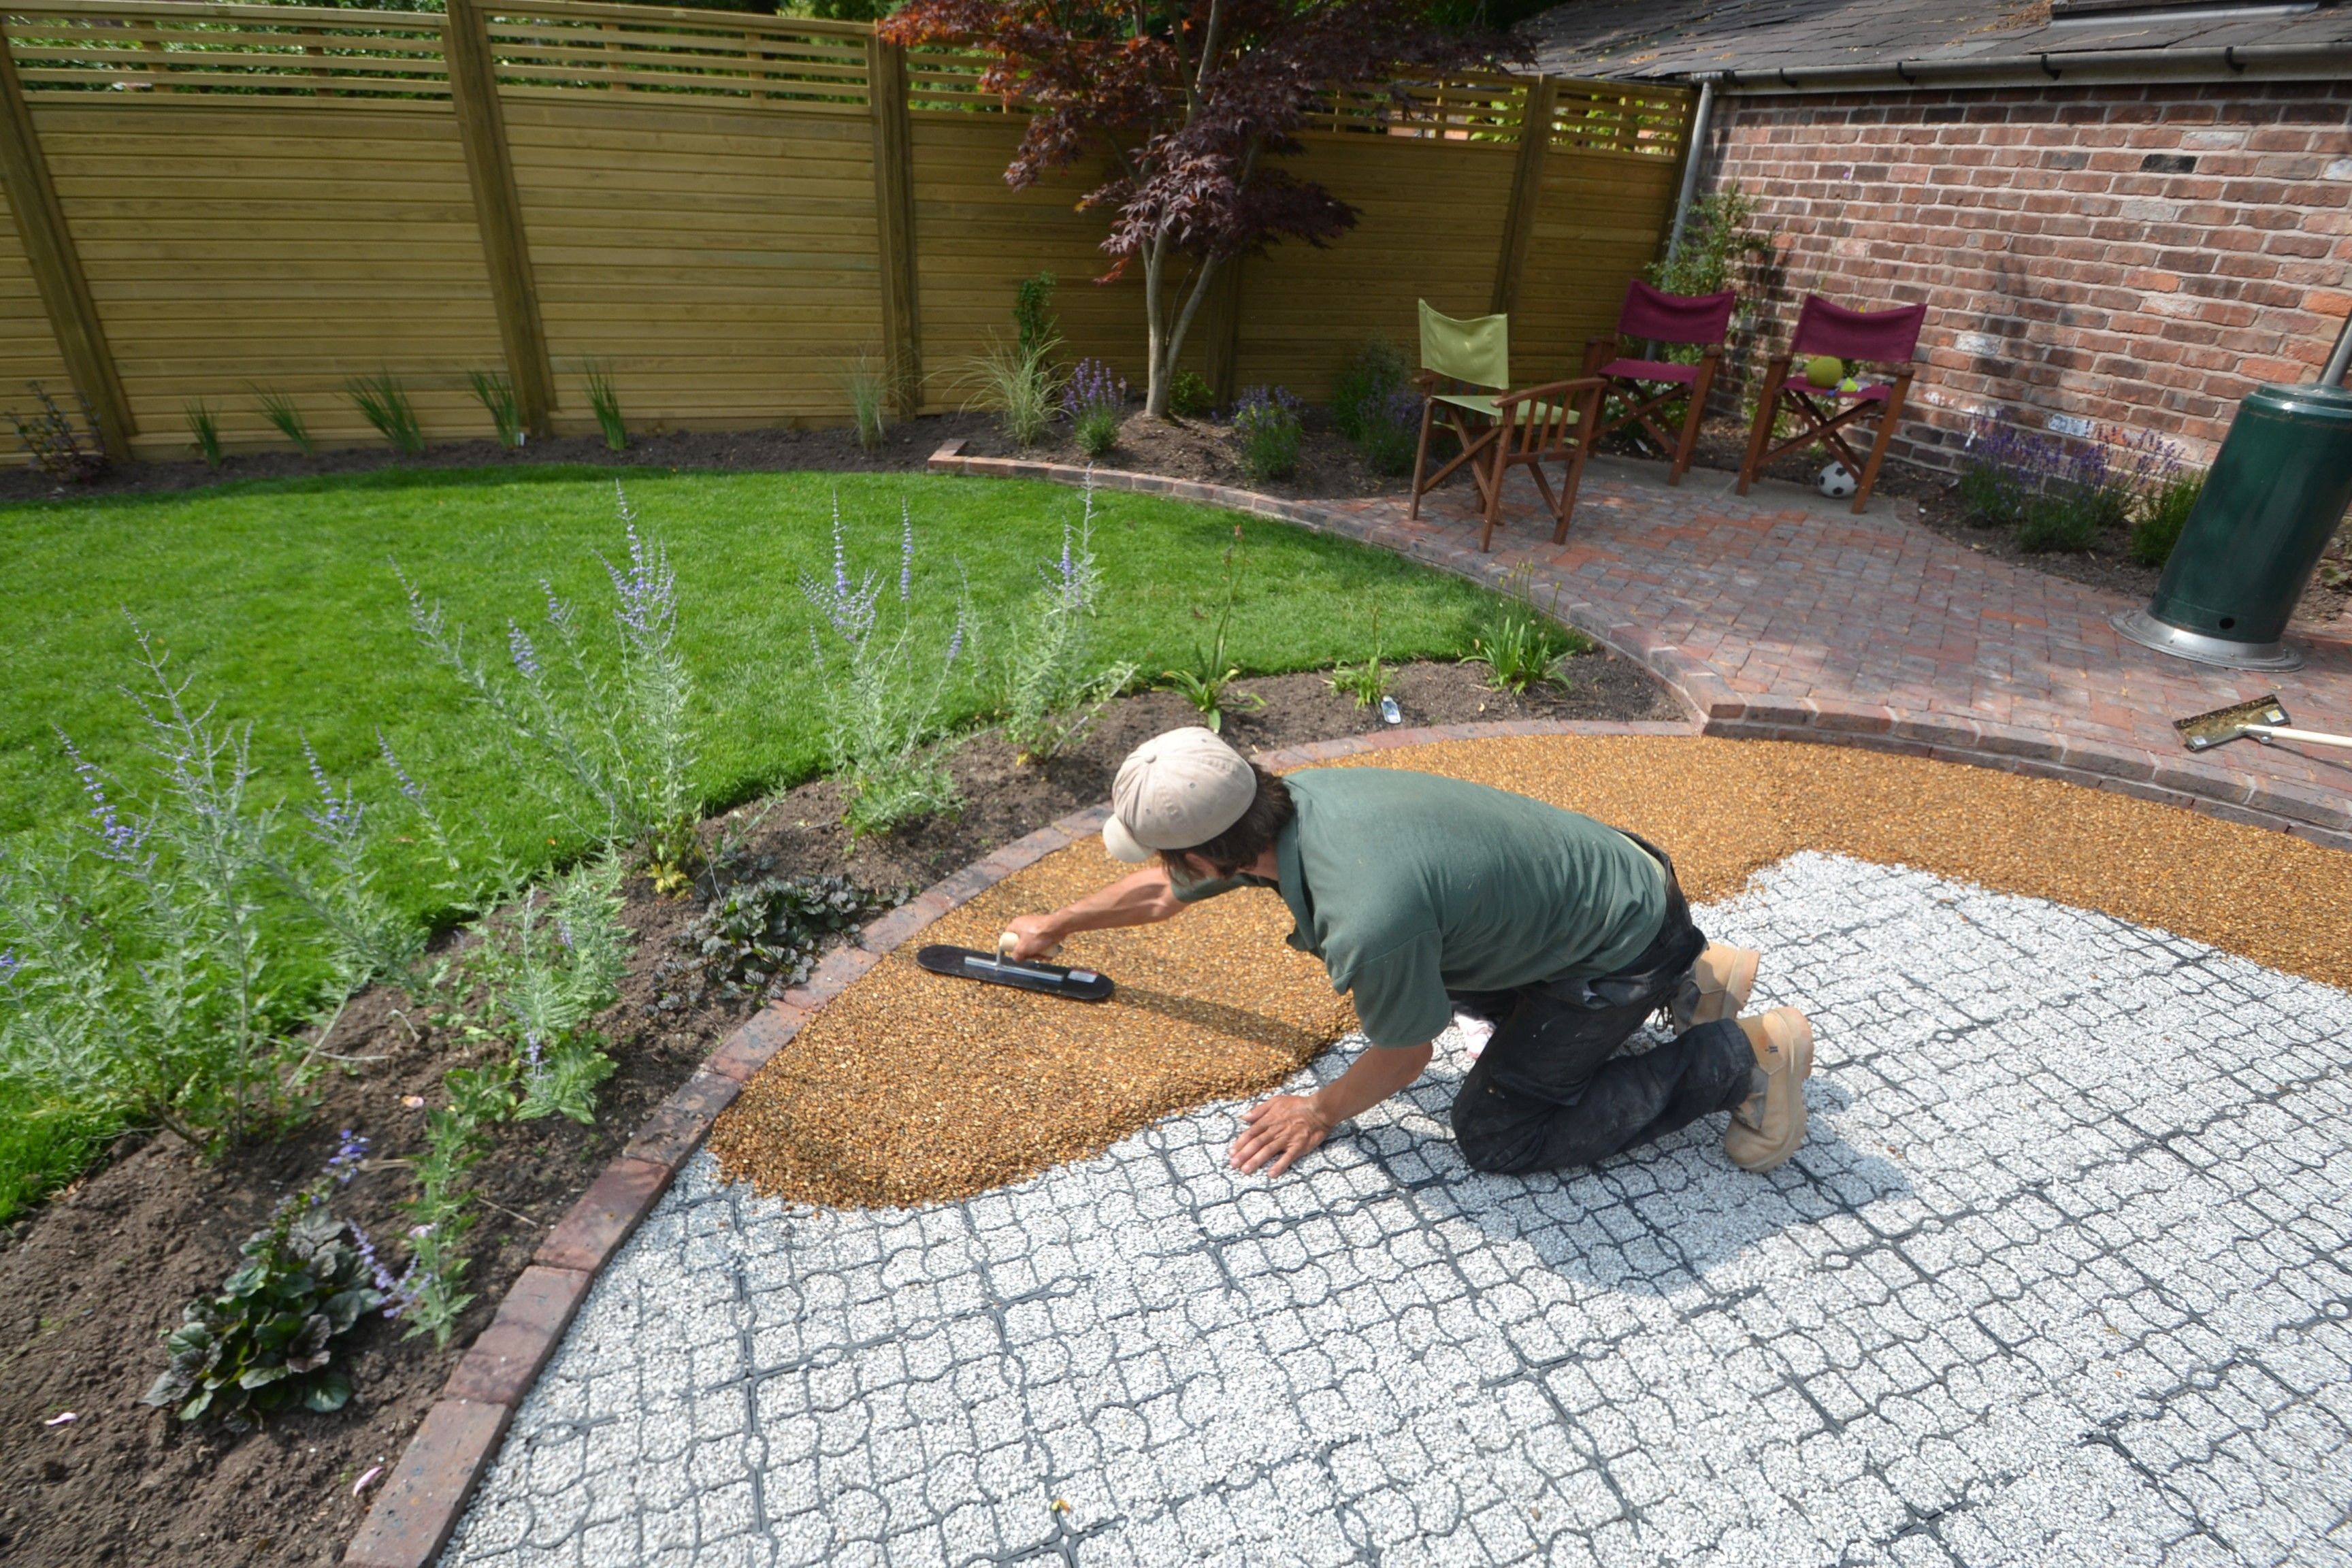 fantastic patio in wilmslow using resin bound gravel by creative gardens and driveways serving the whole of cheshire contact 0161 439 4858 - Garden Design Gravel Patio